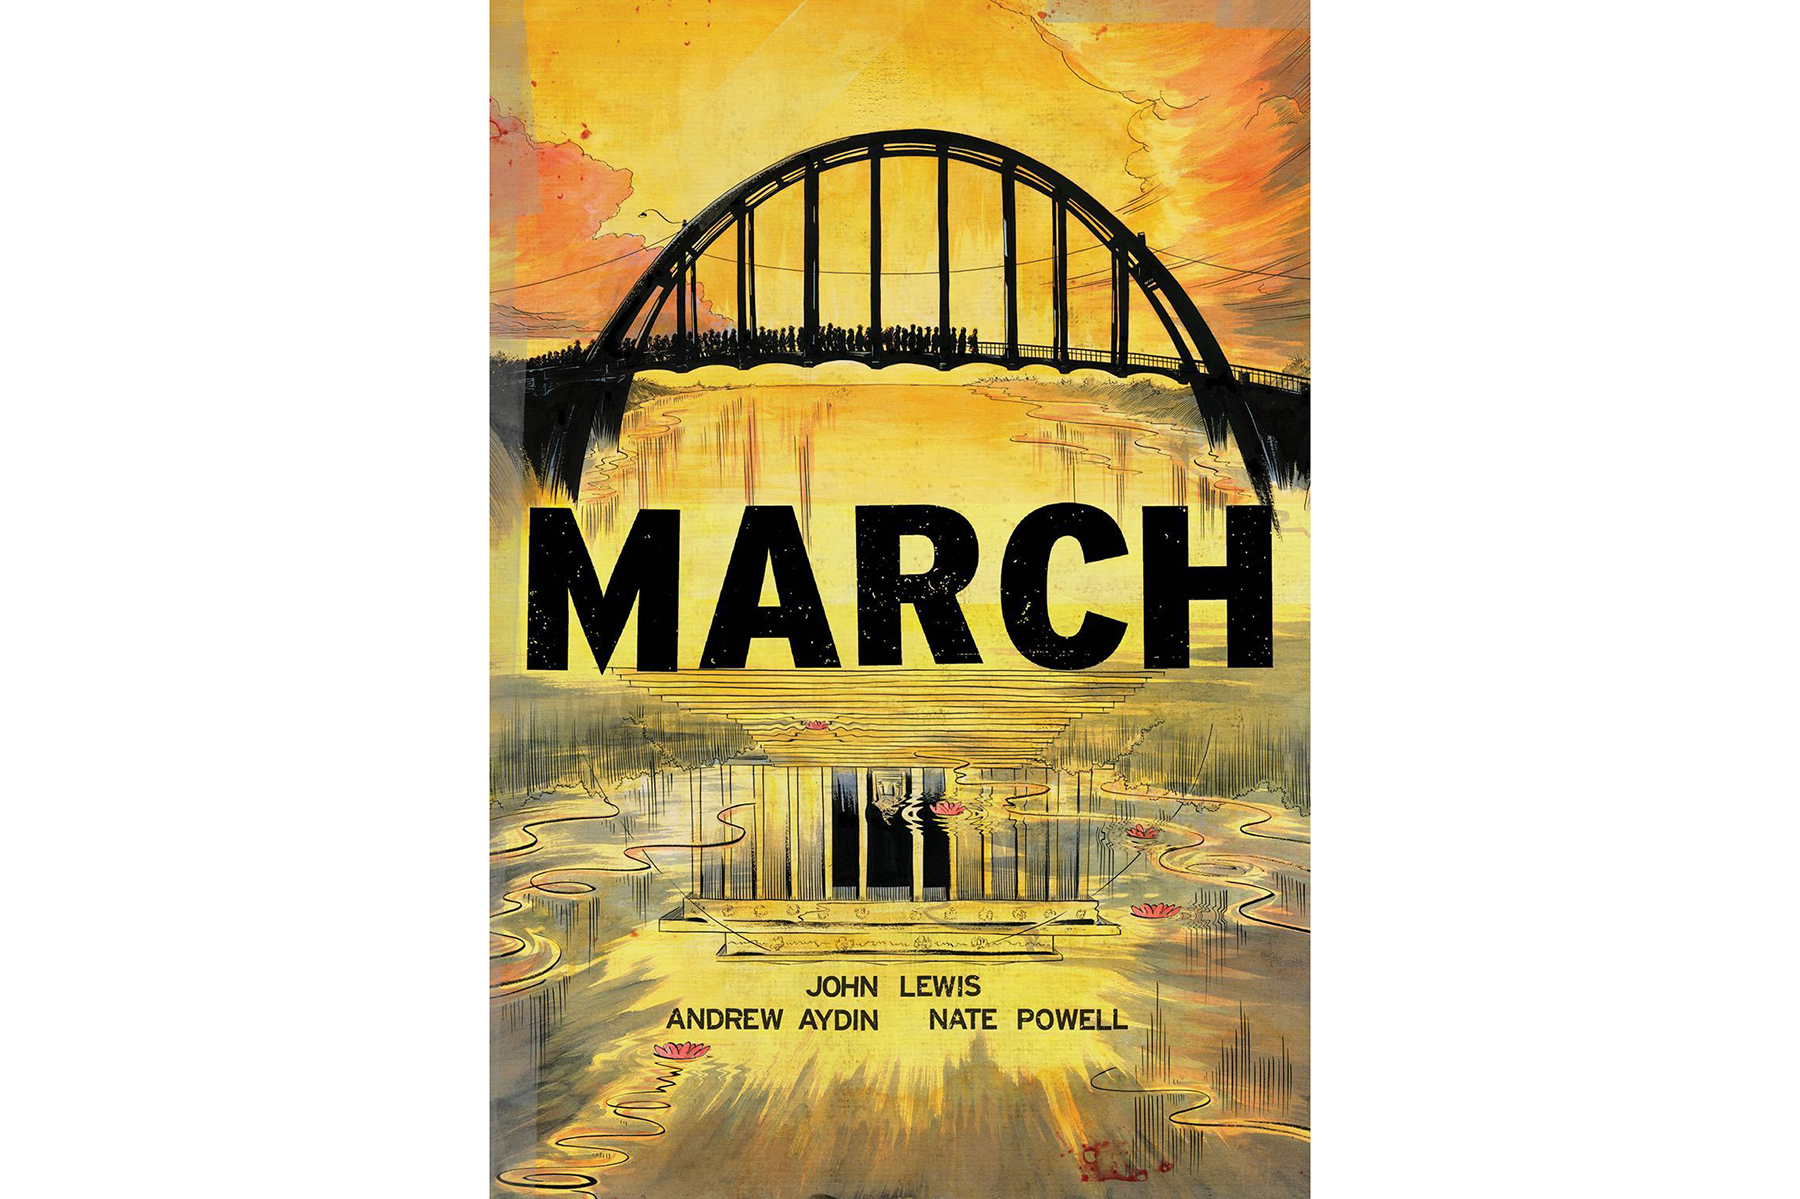 March, Books 1-3, by John Lewis, Andrew Aydin, and Nate Powell